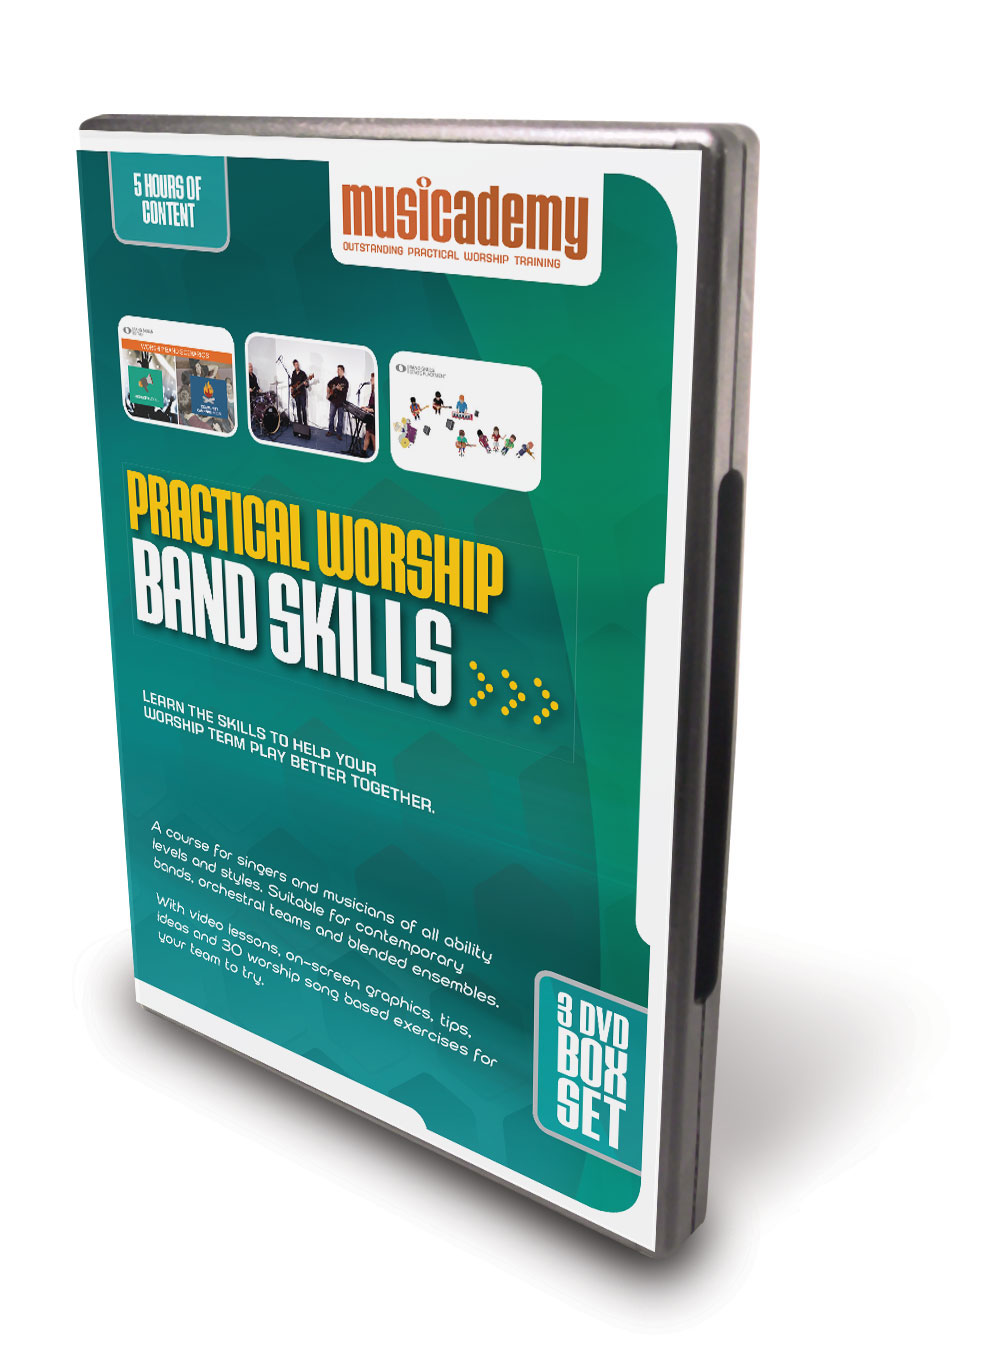 Musicademy Band Skills Course